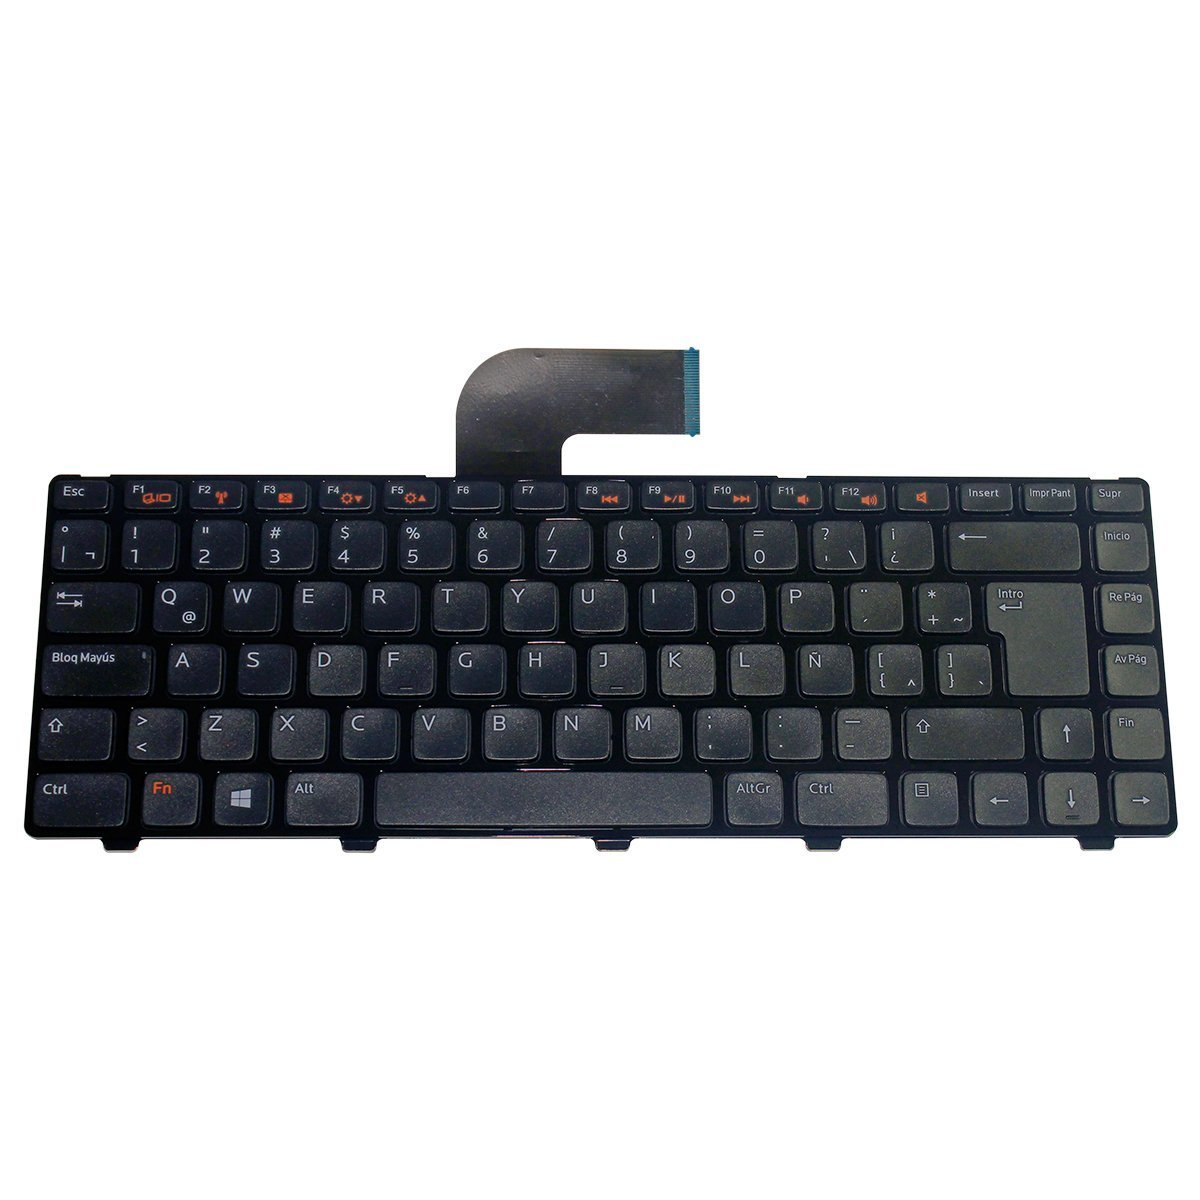 1 Year Warranty LaptopKing Replacement Keyboard for Dell Inspiron 17R N7010 Series Laptop Compatible Part Number 8V8RT 08V8RT AEZE6700110 9Z.N3E82.B1D V104025CS Black US Layout